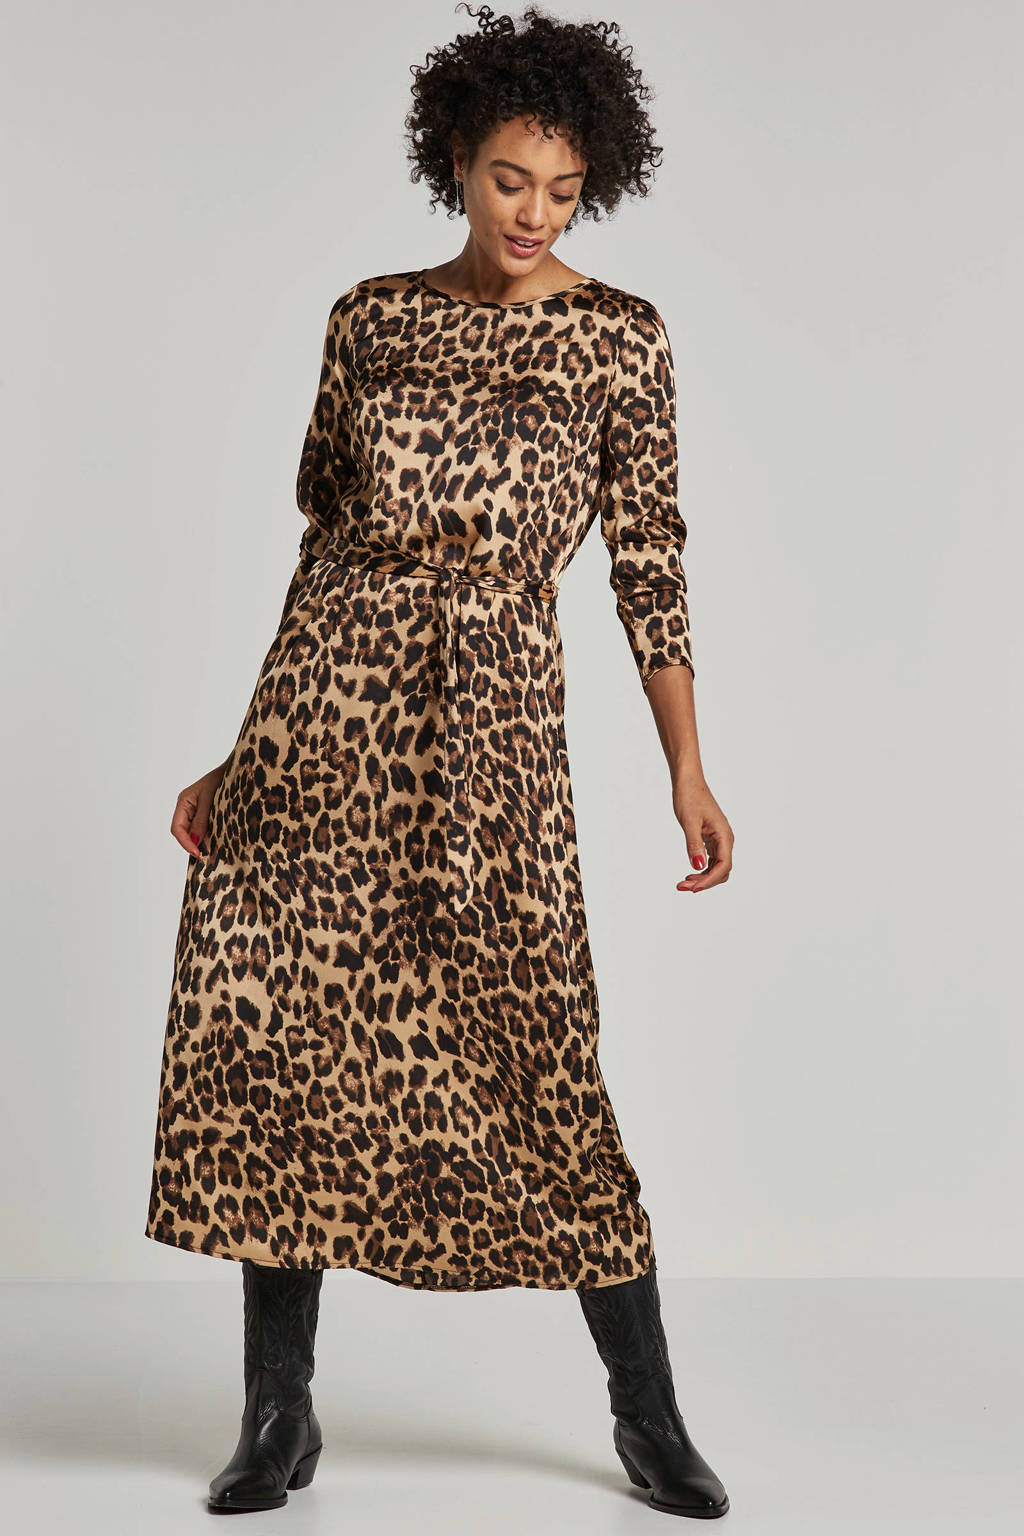 ONLY jurk met all over panter print, Beige/Zwart/Bruin